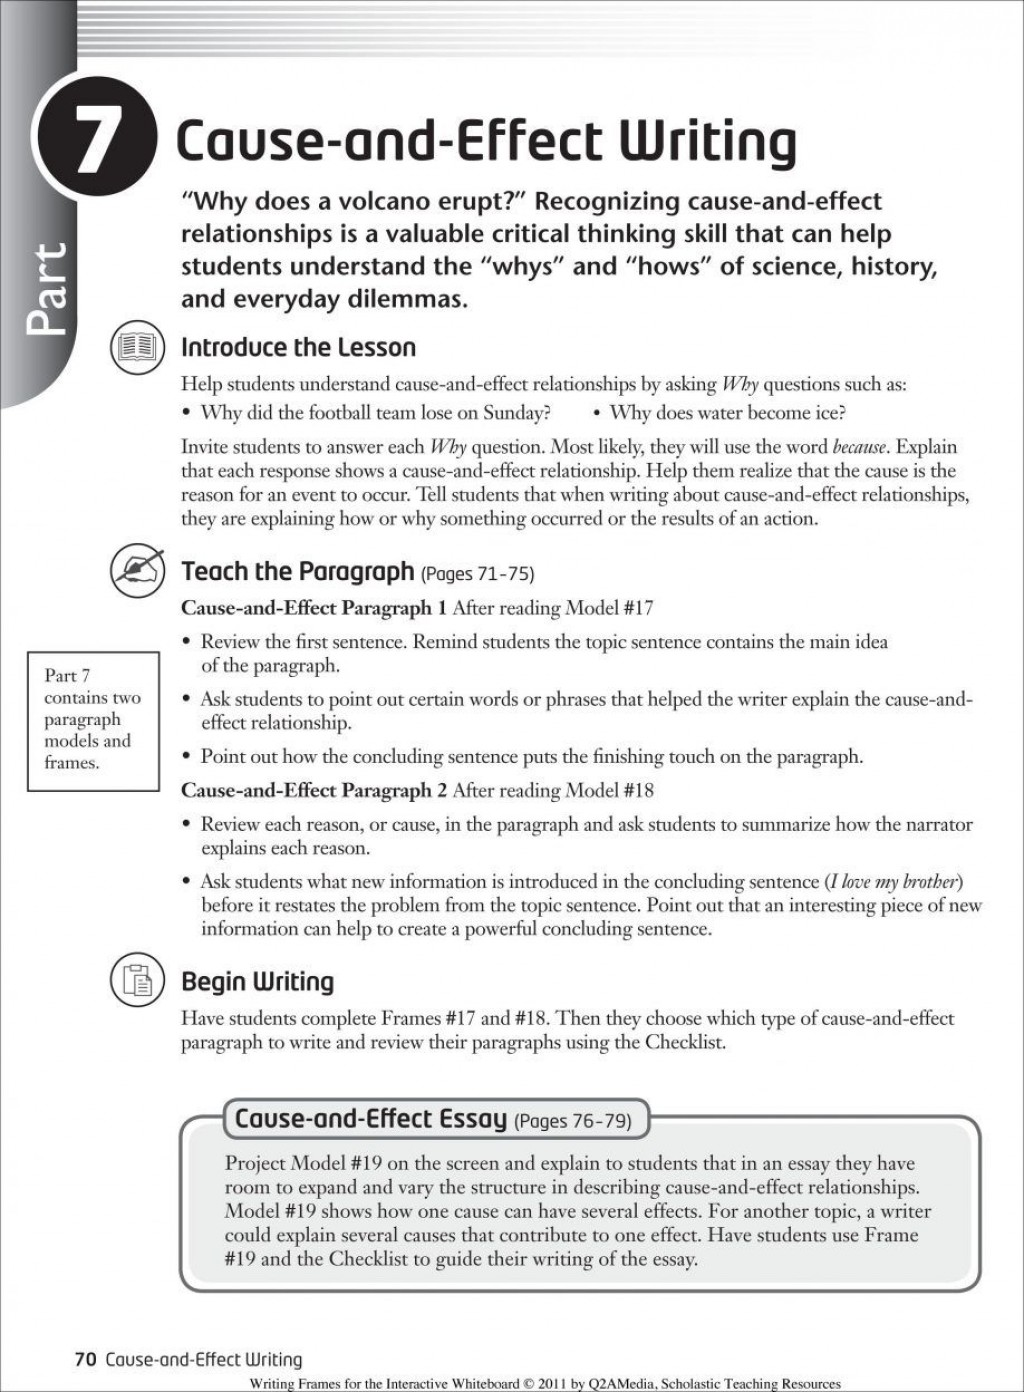 009 Cause And Effect Essays Essay Unique On Divorce Writing Prompts For Middle School Large